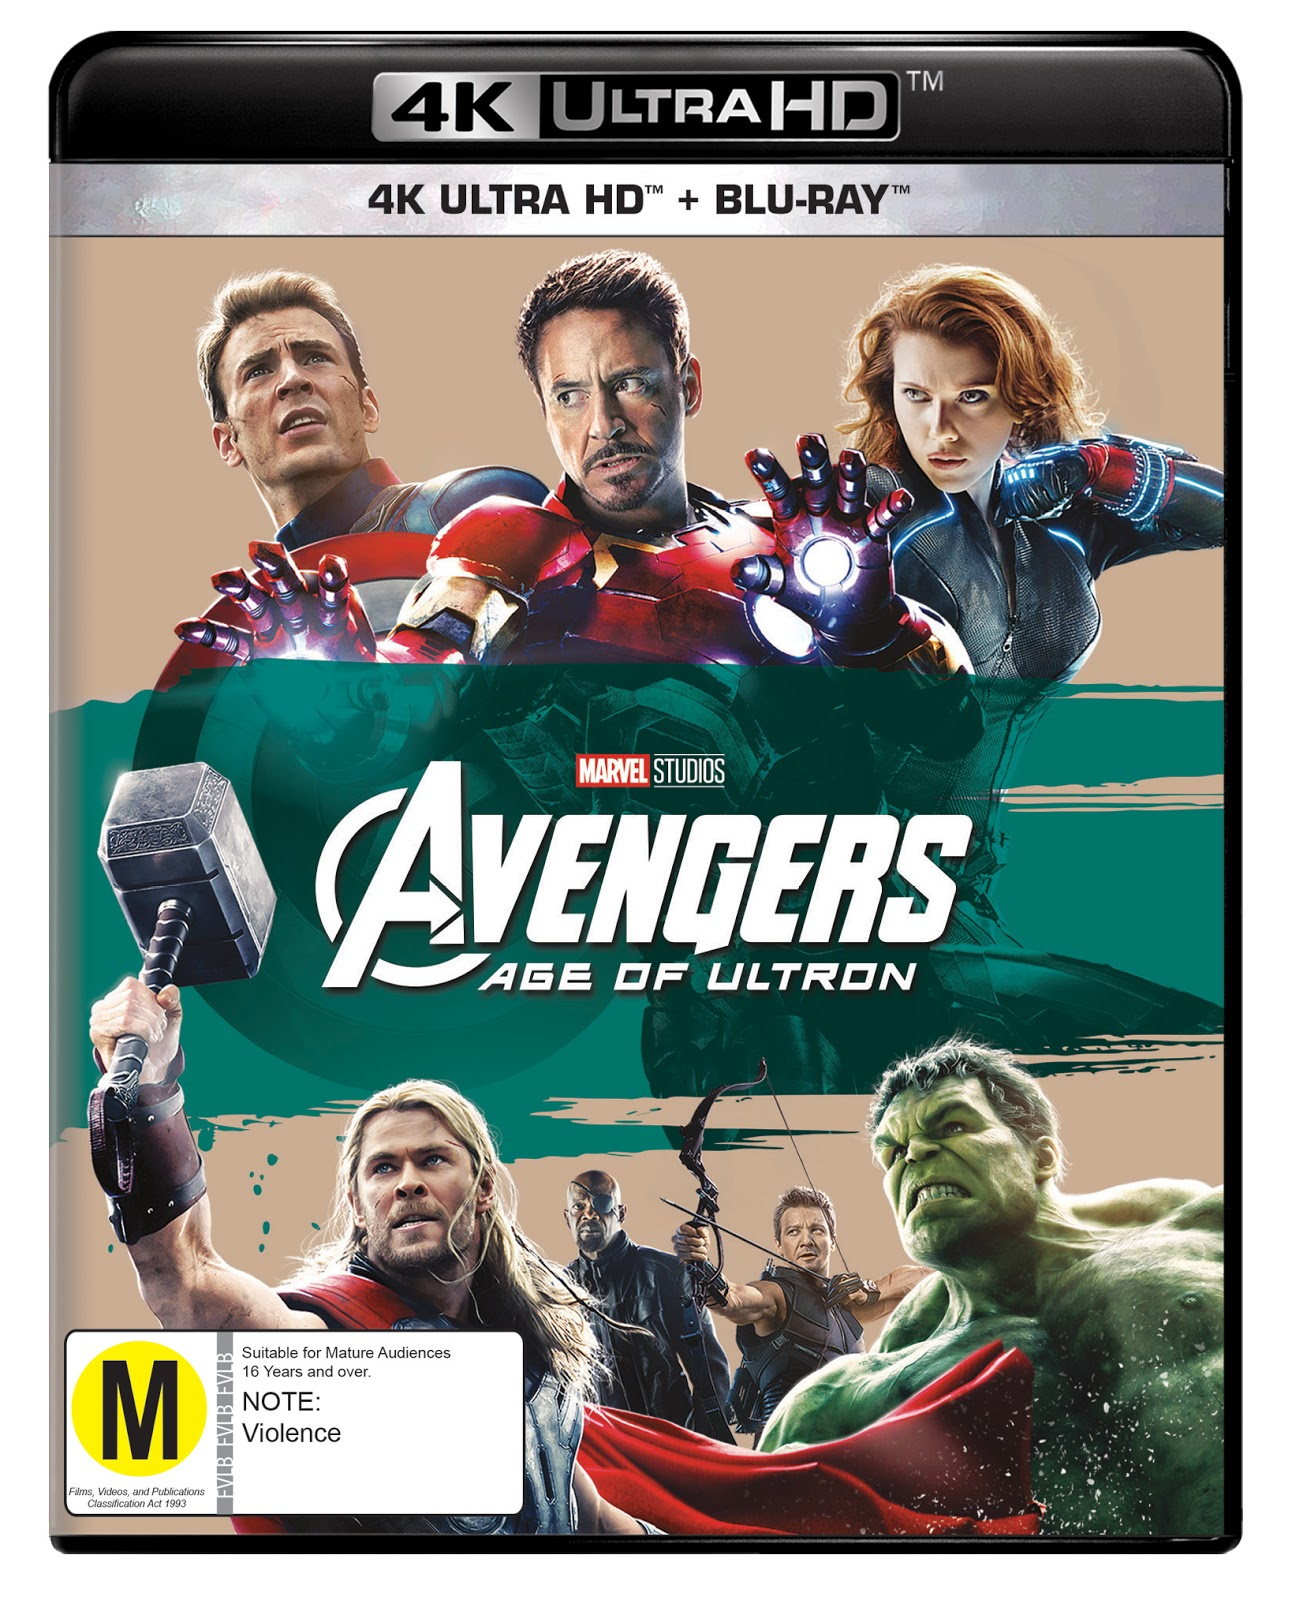 At Darren's World of Entertainment: Win The Avengers